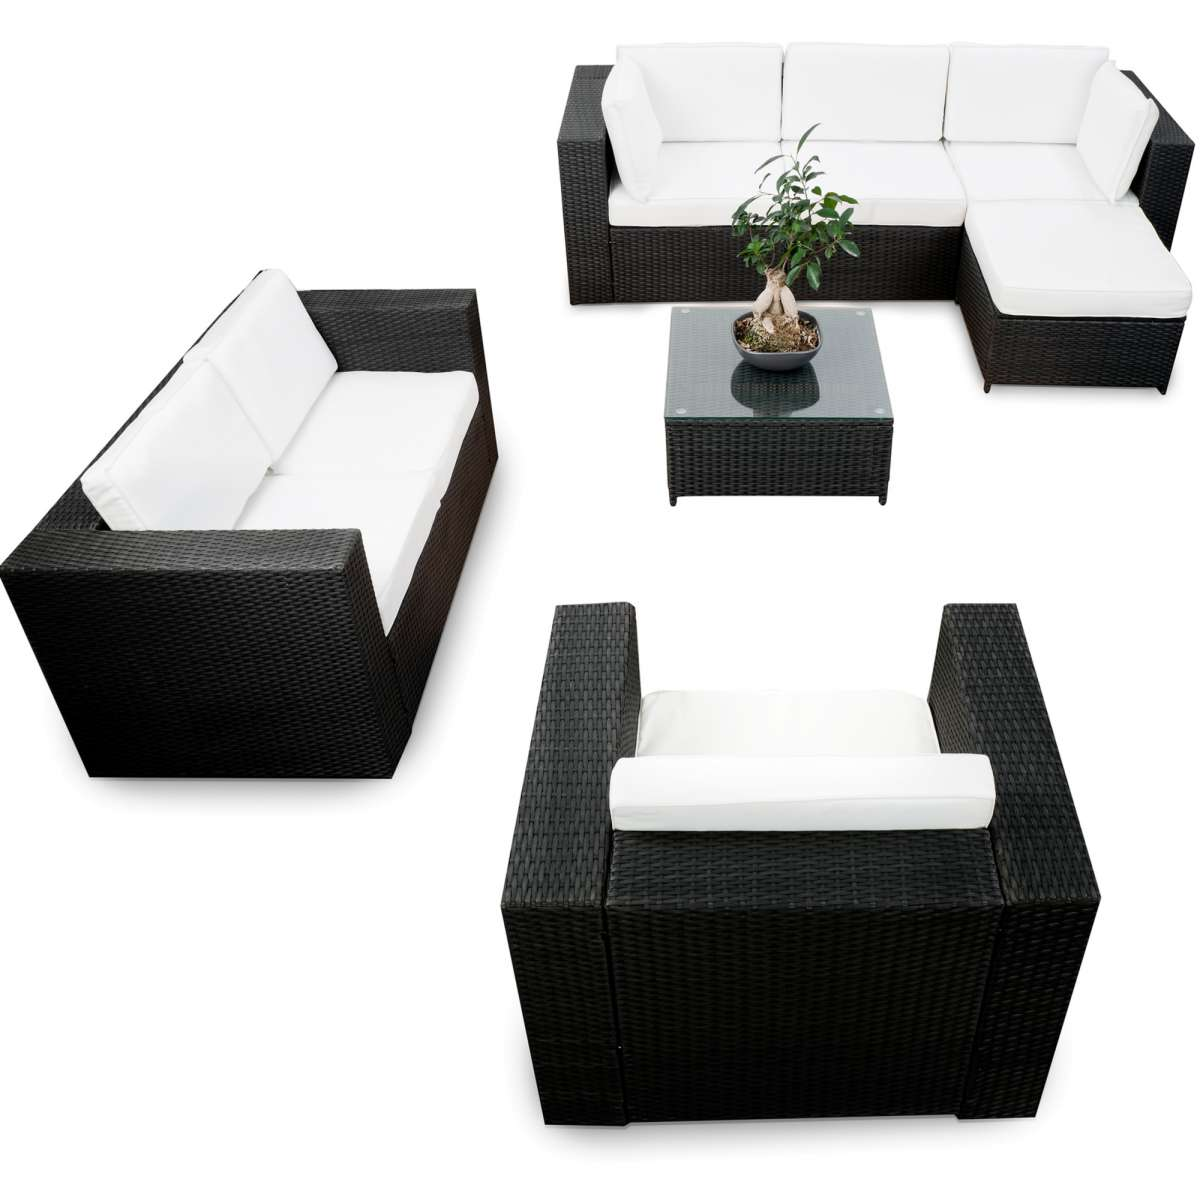 outdoor loungembel gastronomie stunning furniture outdoor chaise lounge chair awesome claverton. Black Bedroom Furniture Sets. Home Design Ideas